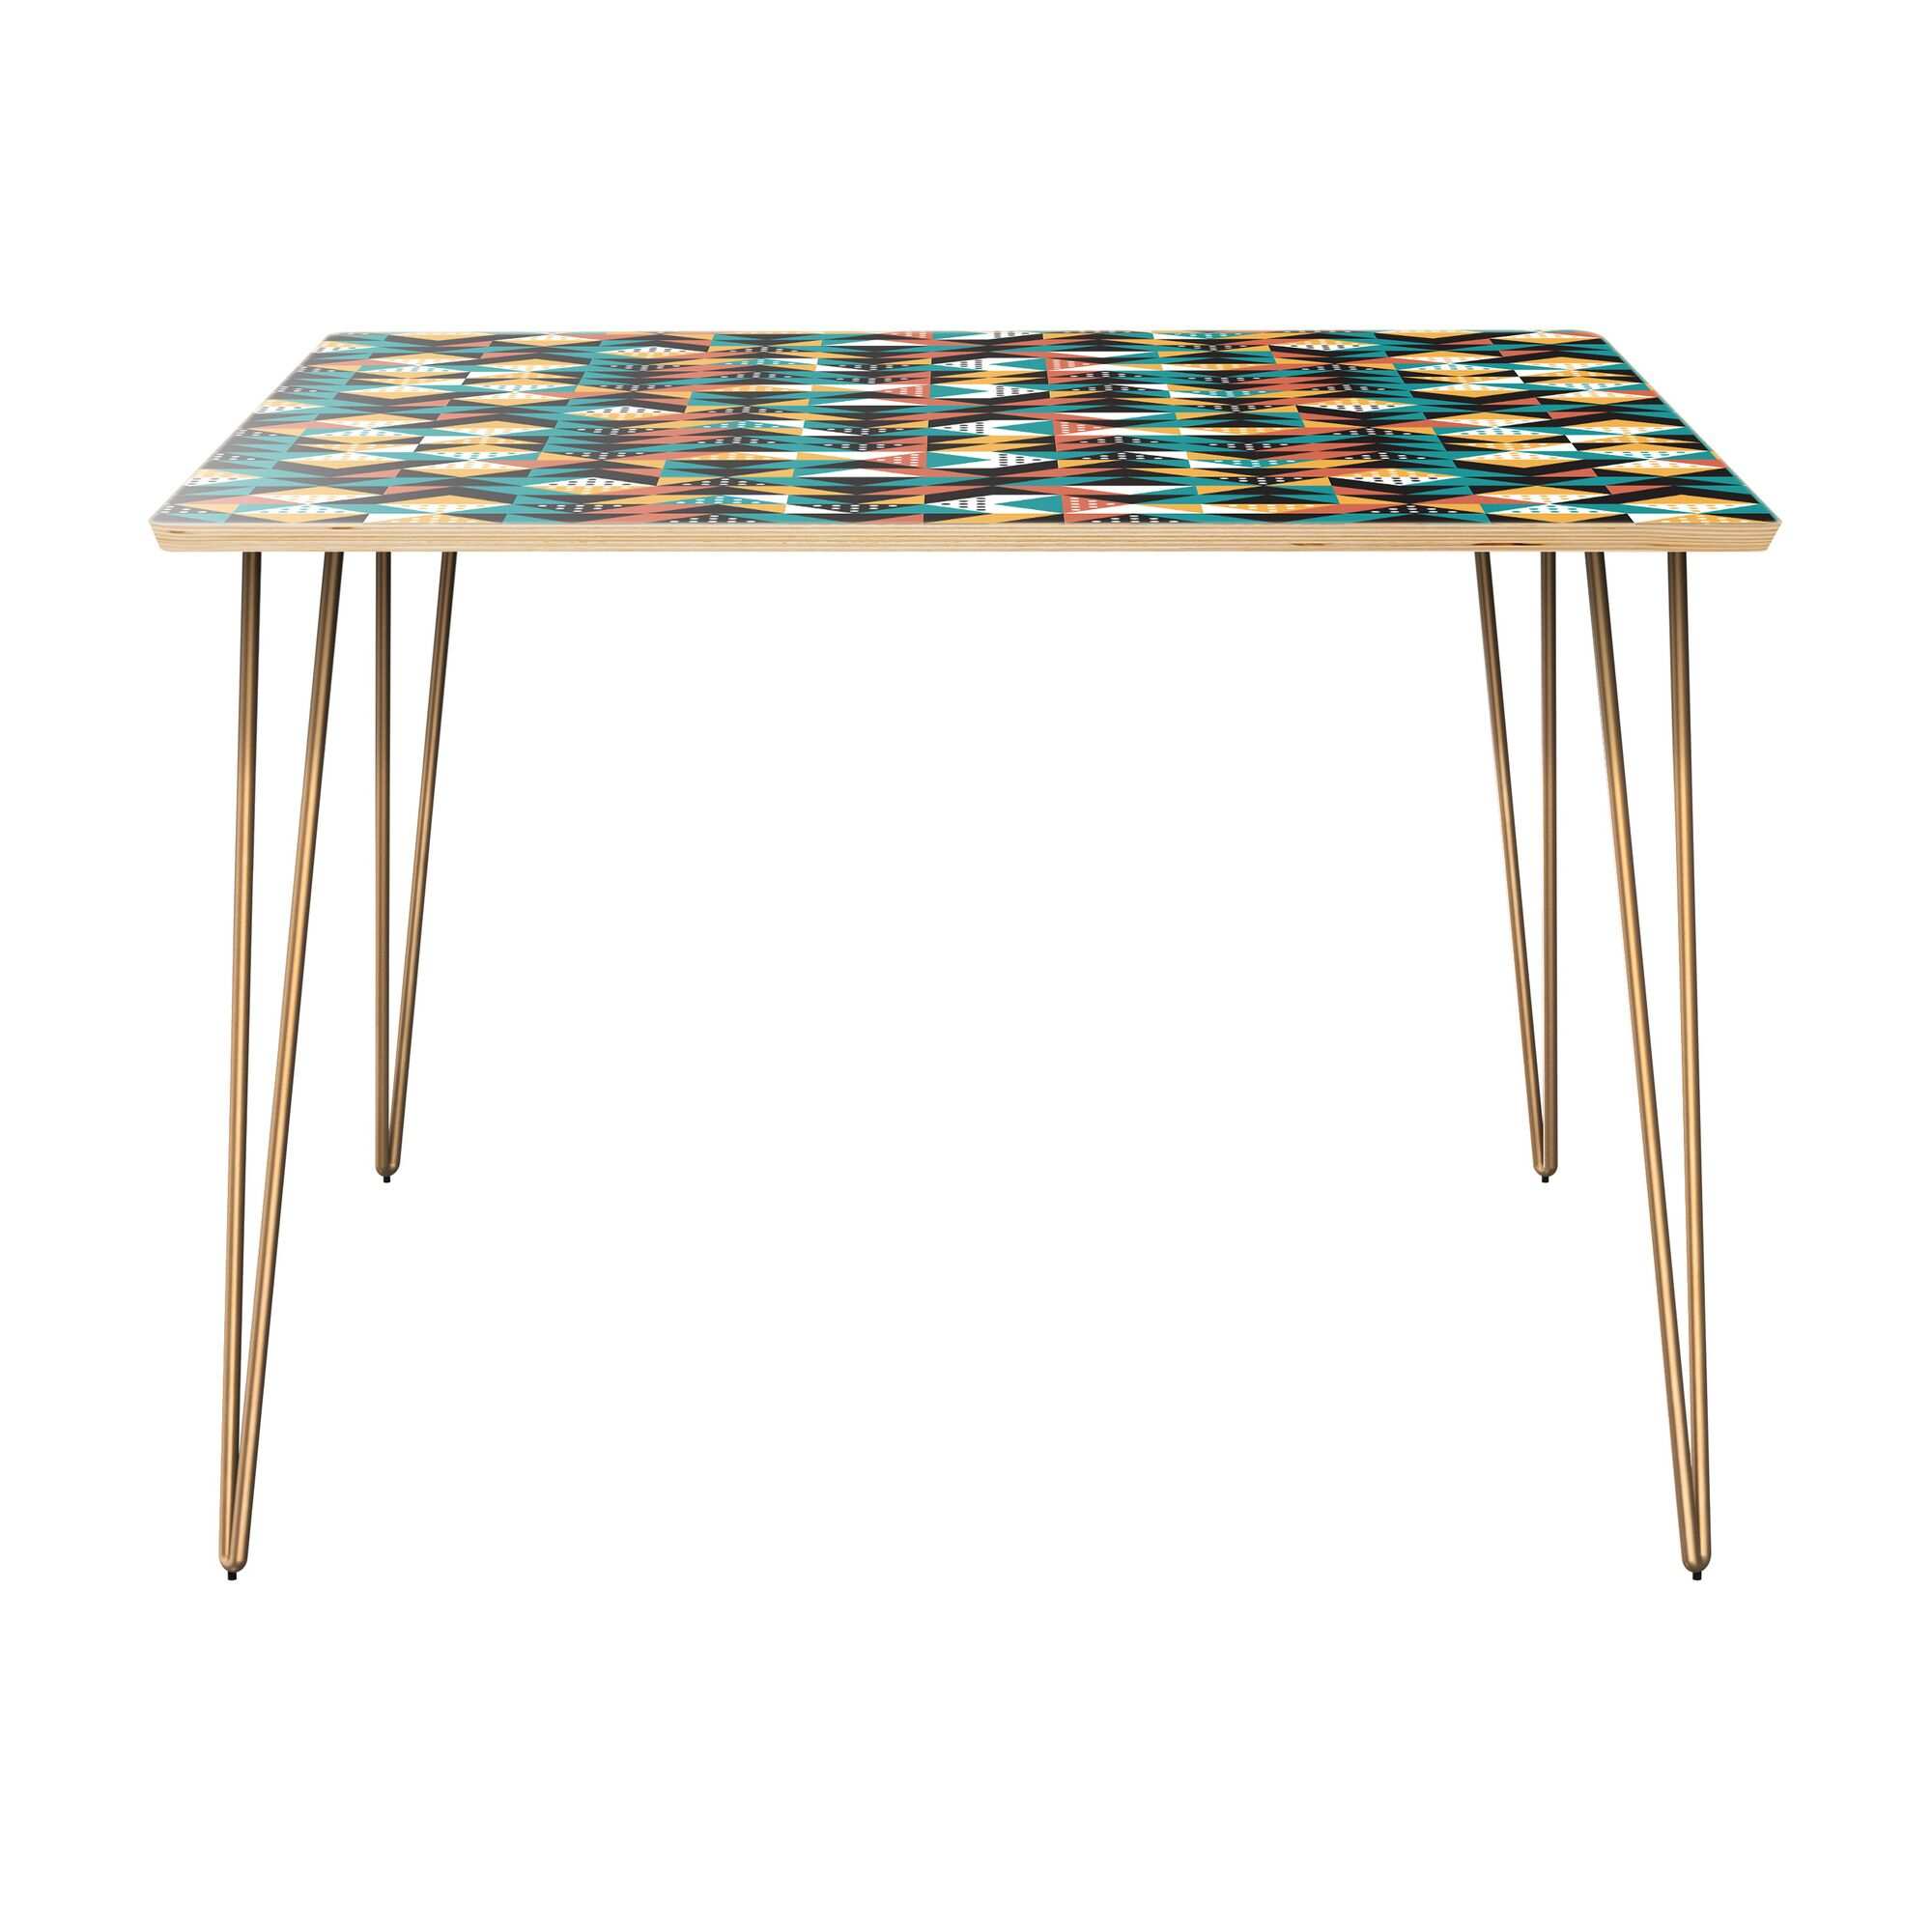 Reich Dining Table Table Top Color: Natural, Table Base Color: Brass